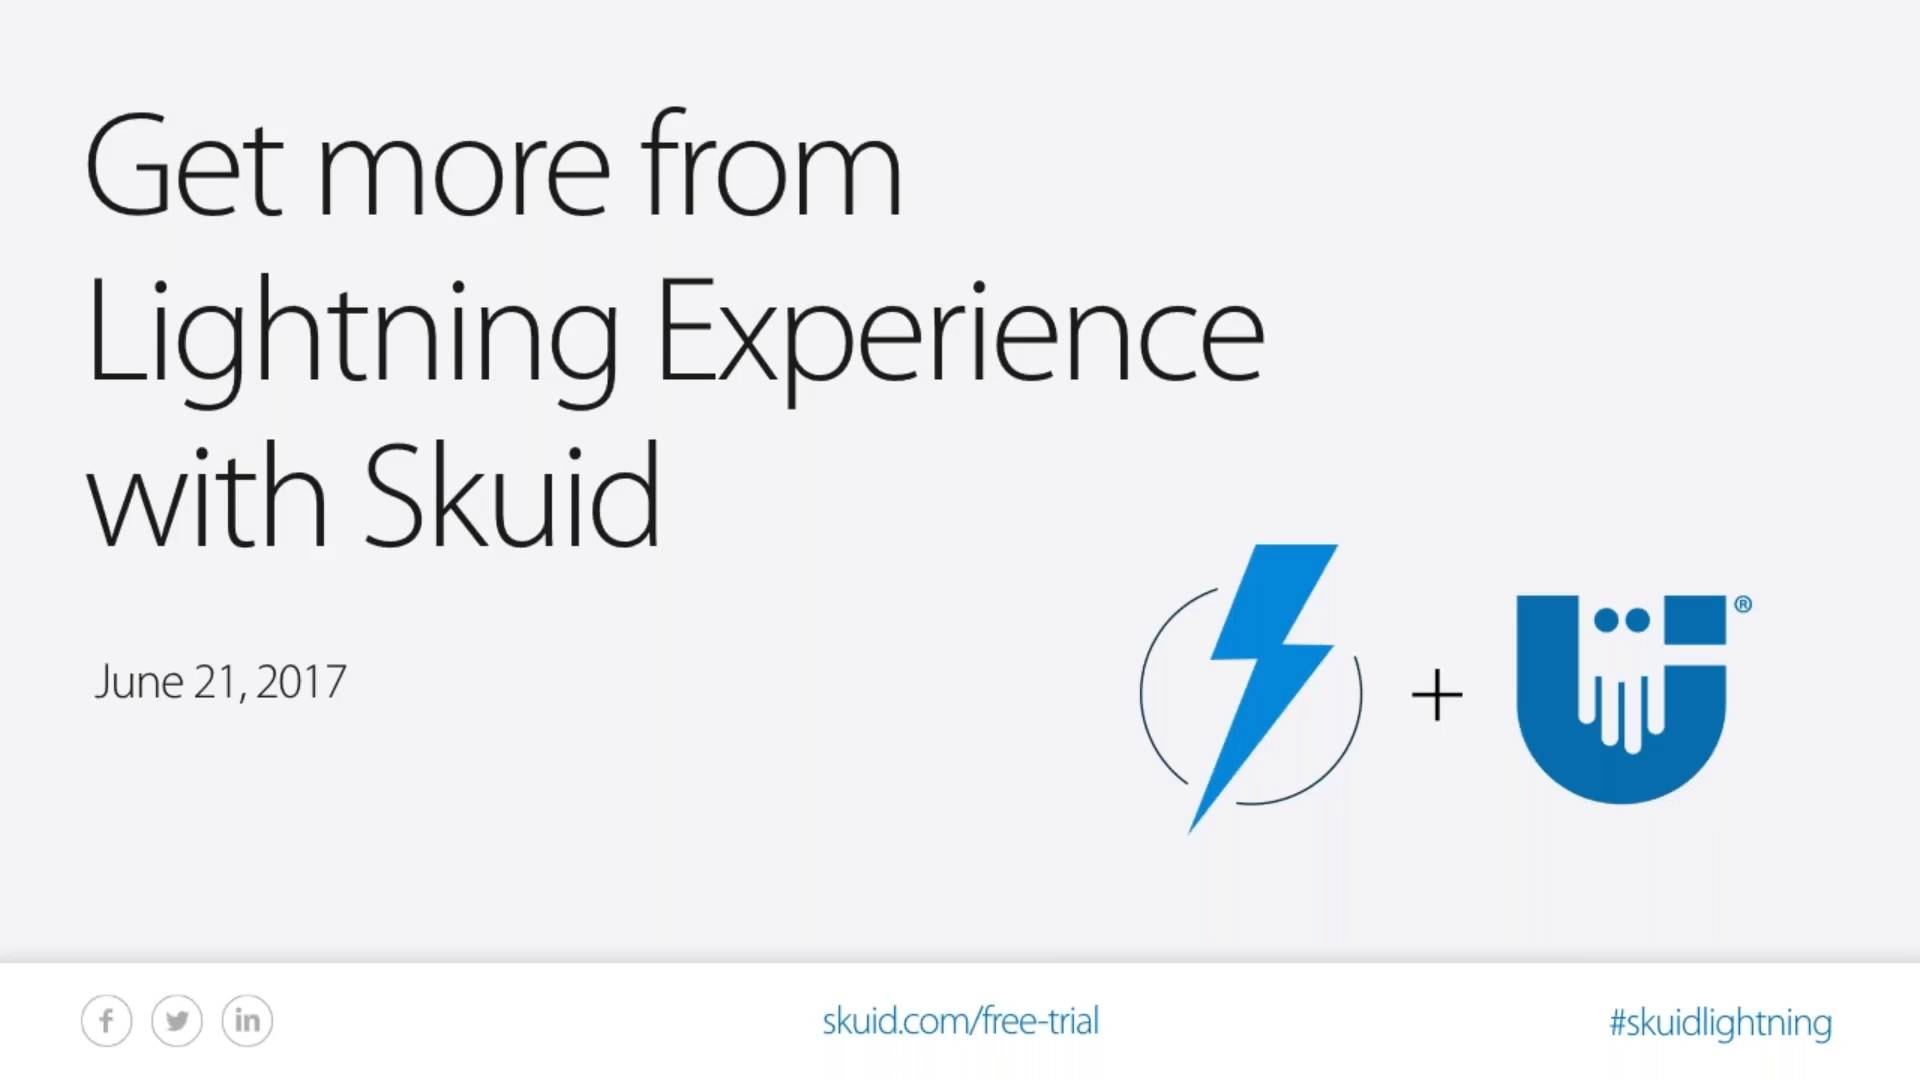 Get more from Lightning Experience with Skuid